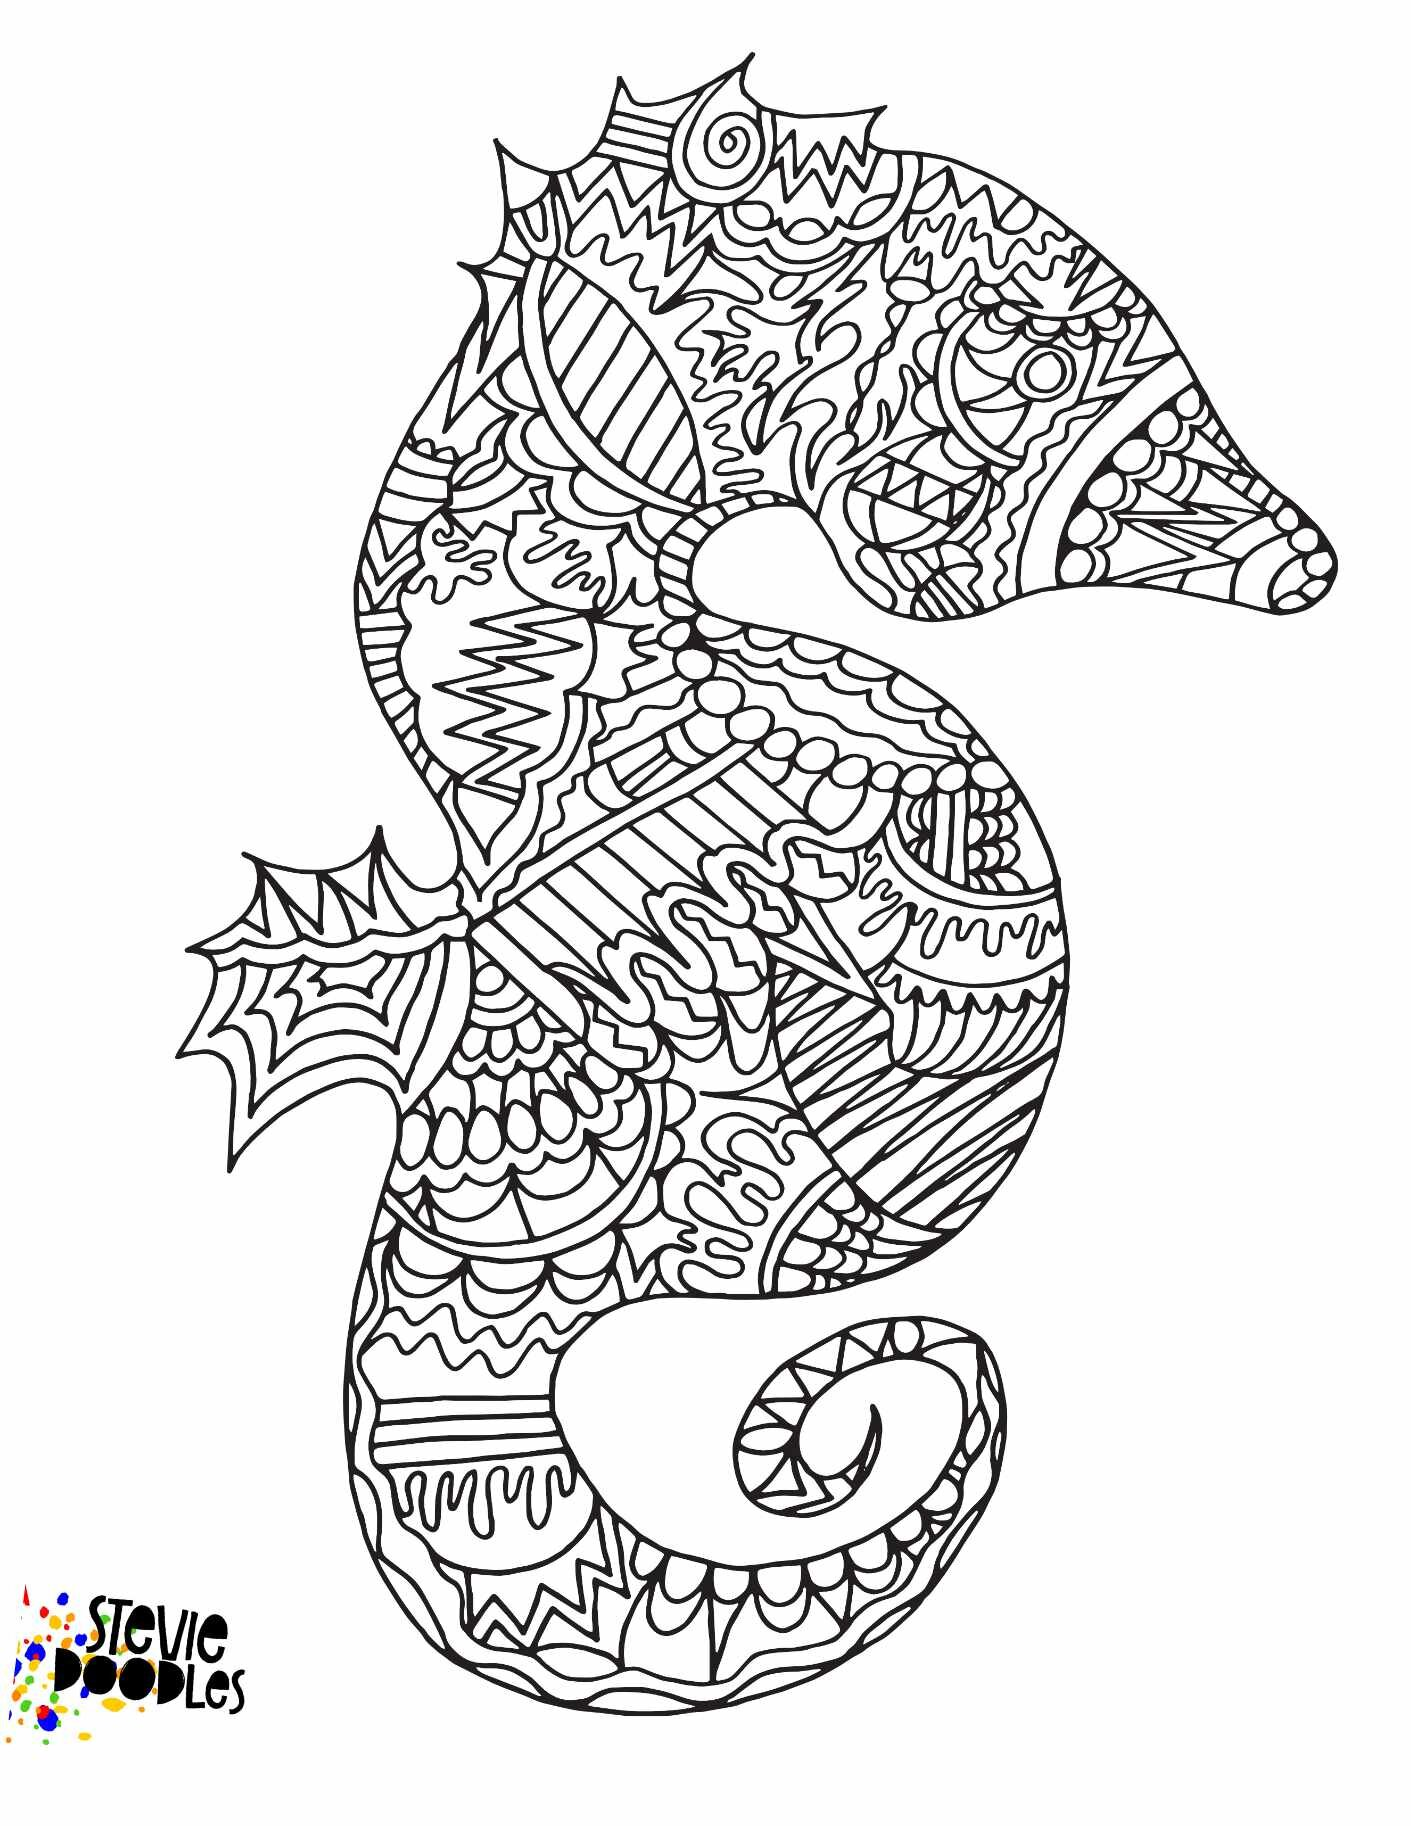 Free Seahorse Printable Coloring Page Stevie Doodles